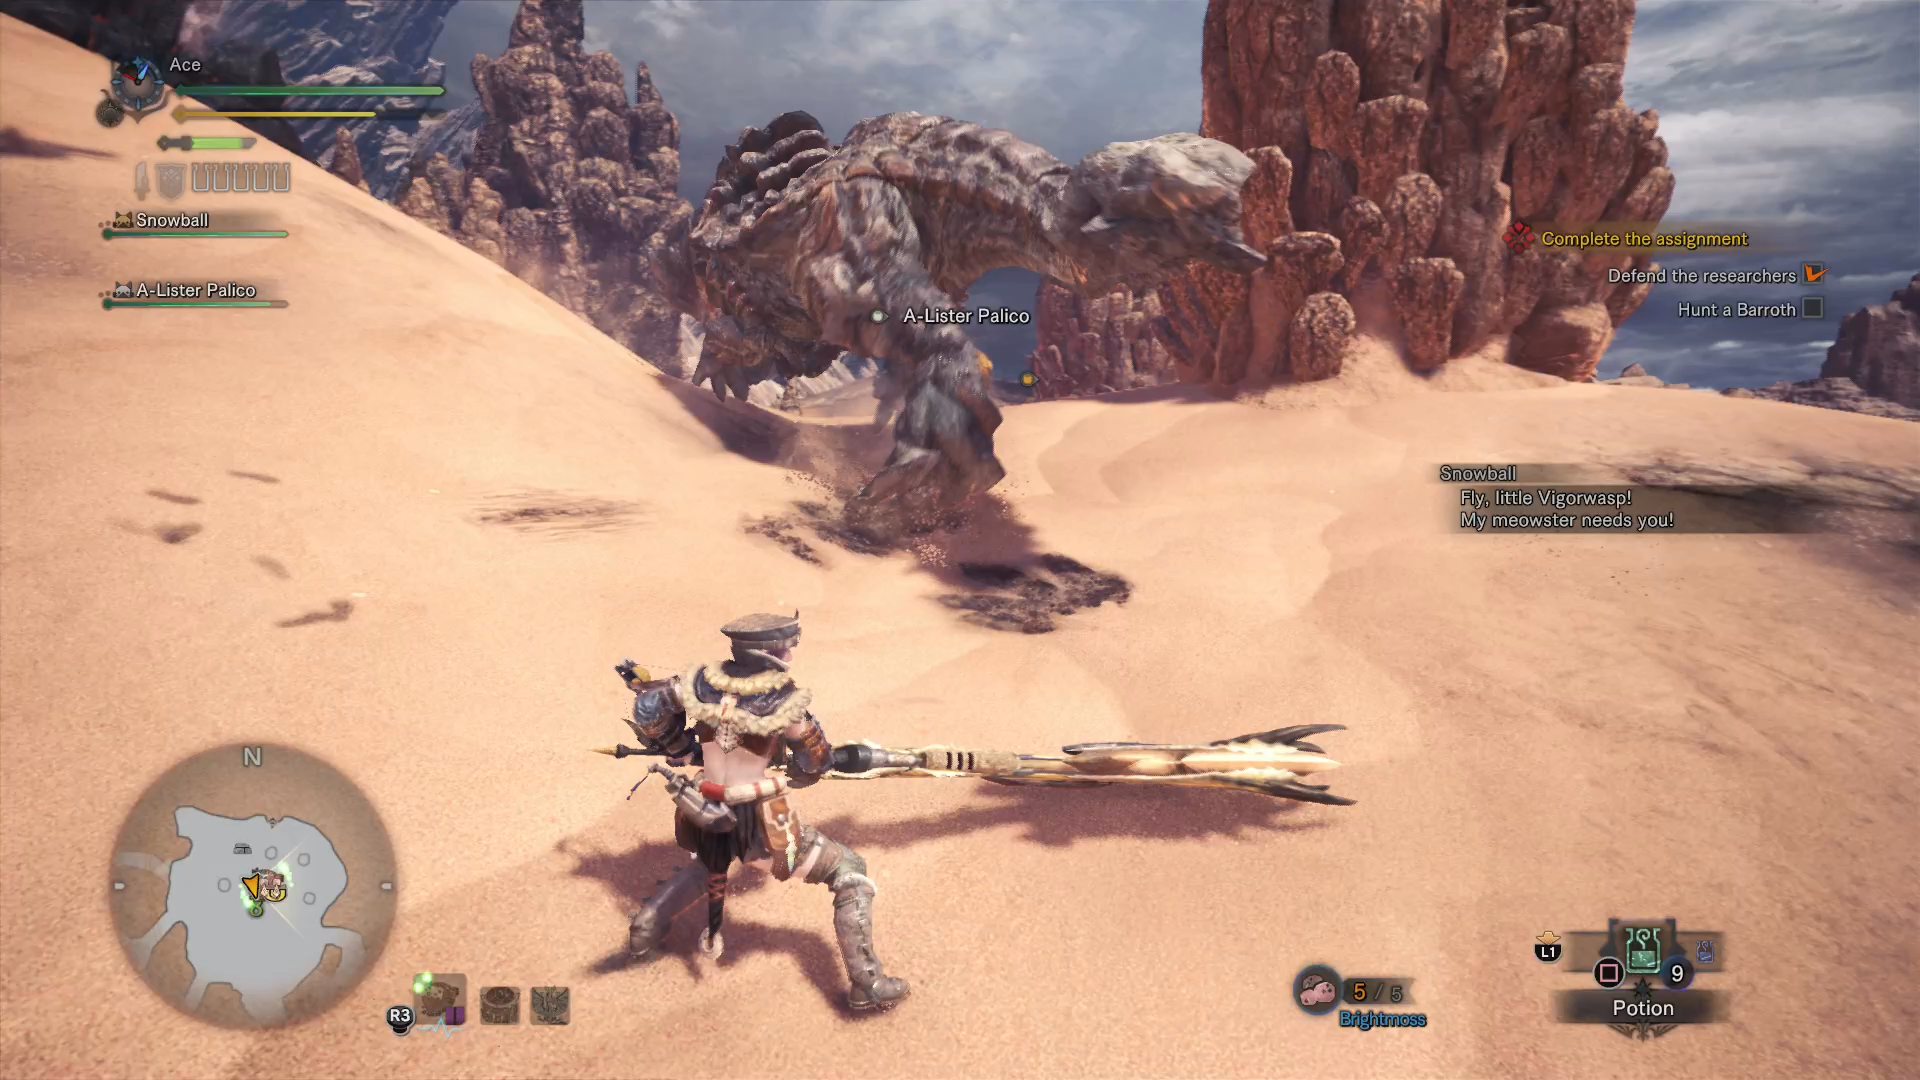 Monster hunter world street fighter 5 collaboration guide event this down the dark muddy path quest takes place in the arena and youll find yourself going up against the intimidating barroth solutioingenieria Image collections